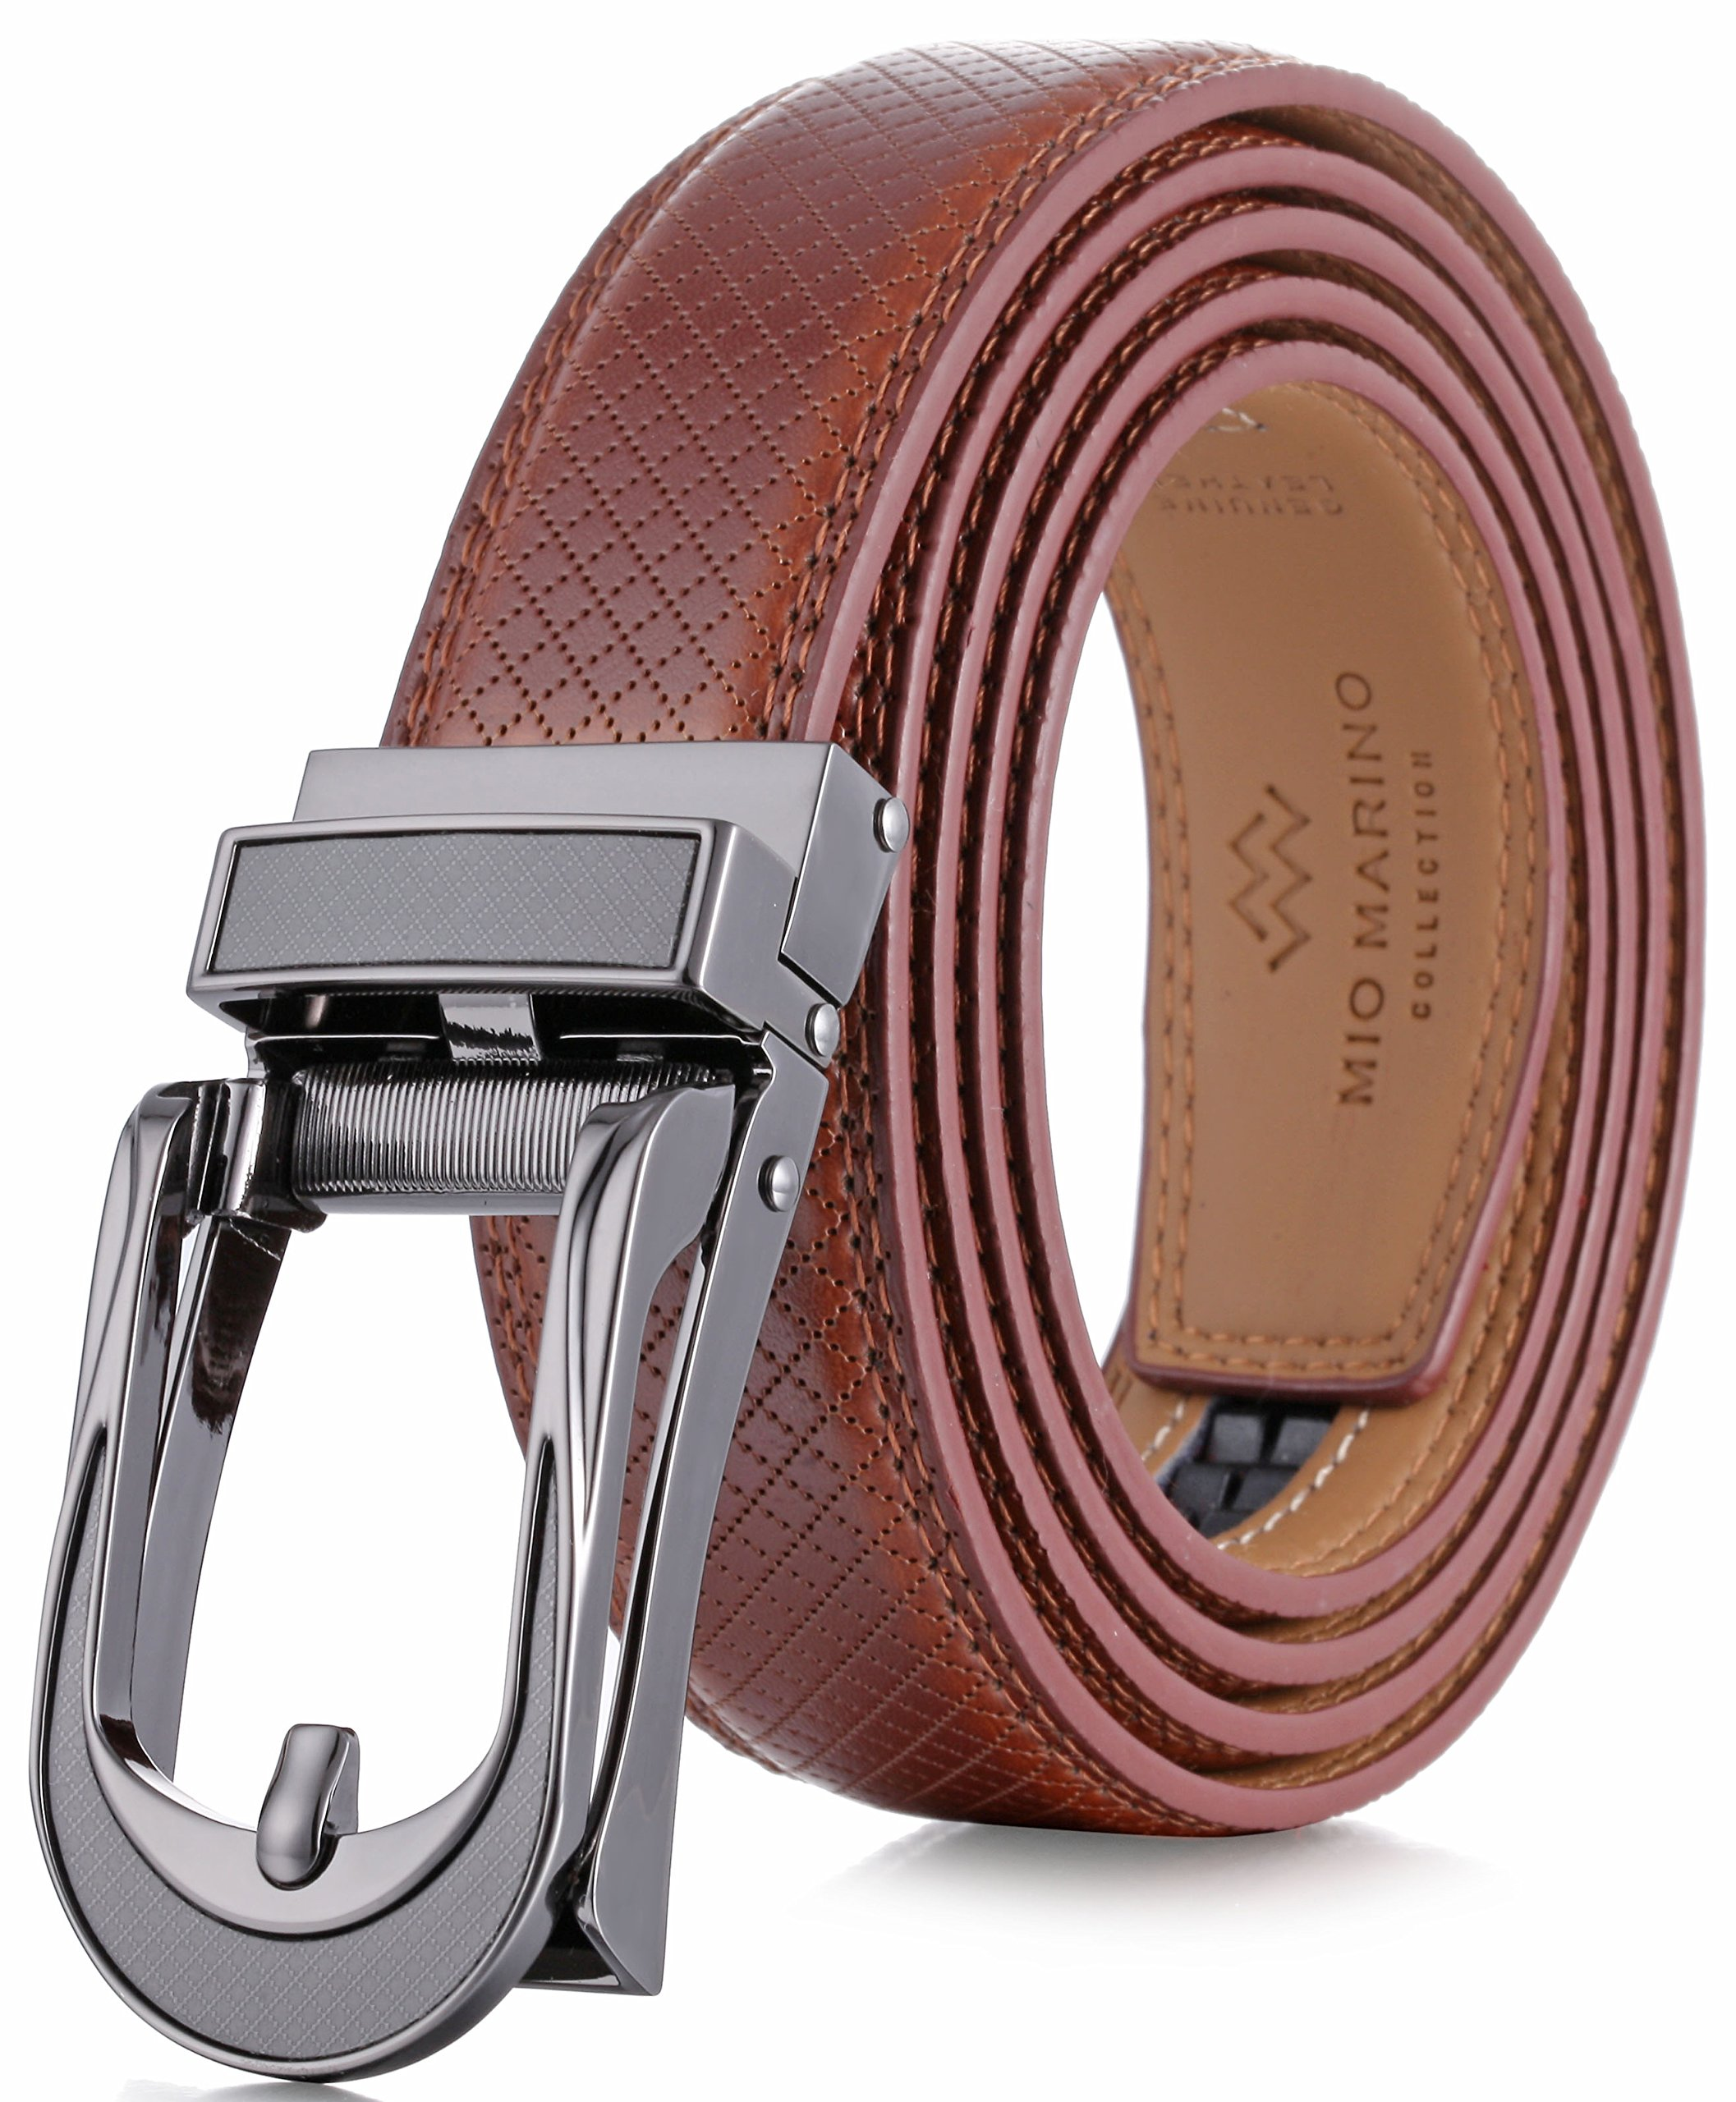 abd3fd8556d Marino Avenue Mens Genuine Leather Ratchet Dress Belt with Open Linxx  Leather Buckle